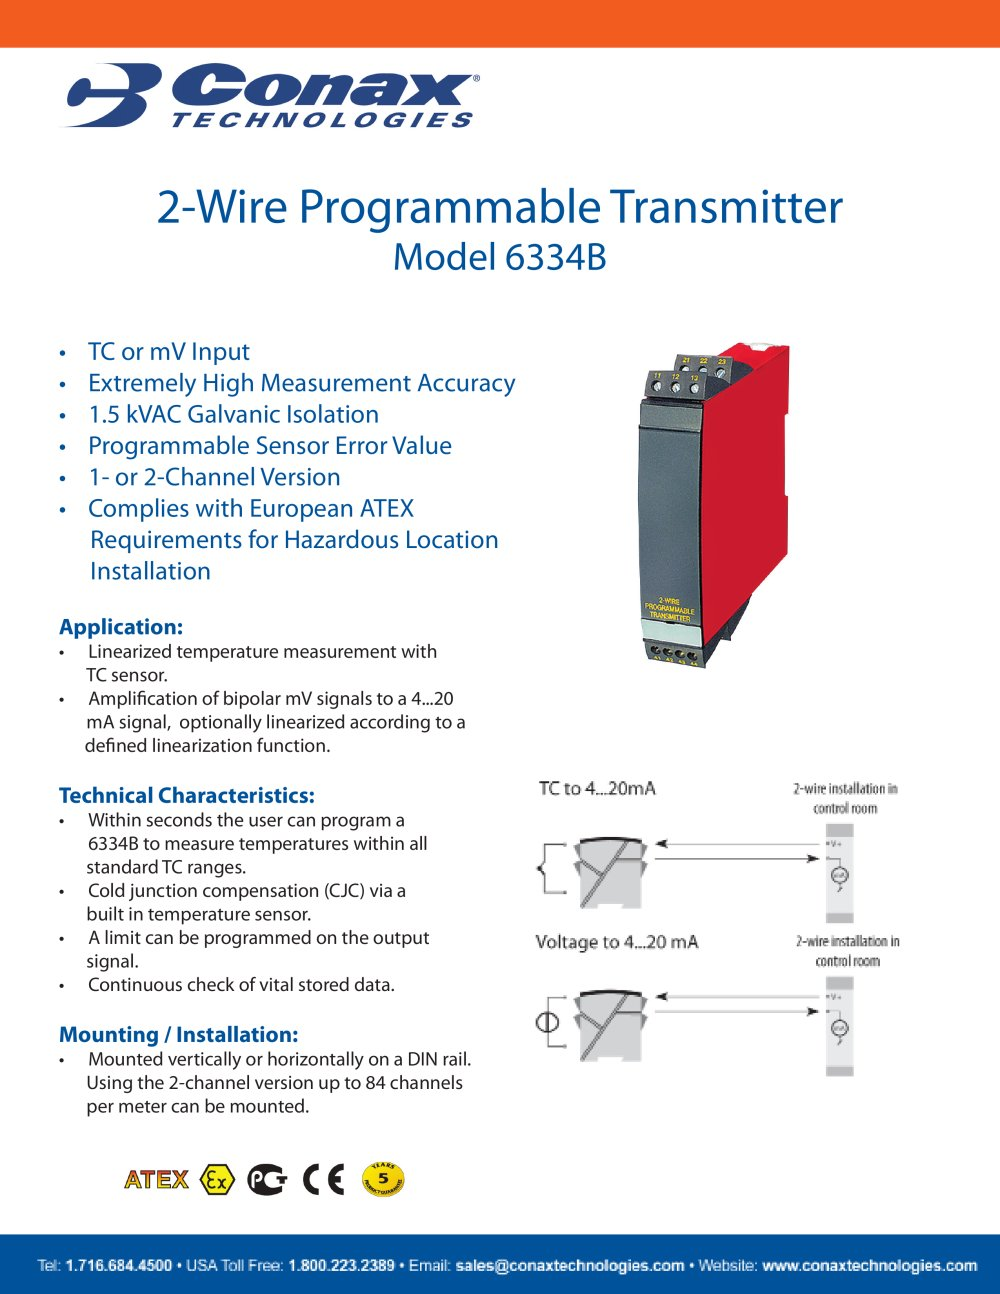 2-Wire Programmable Transmitter - Model 6334B - Conax Technologies